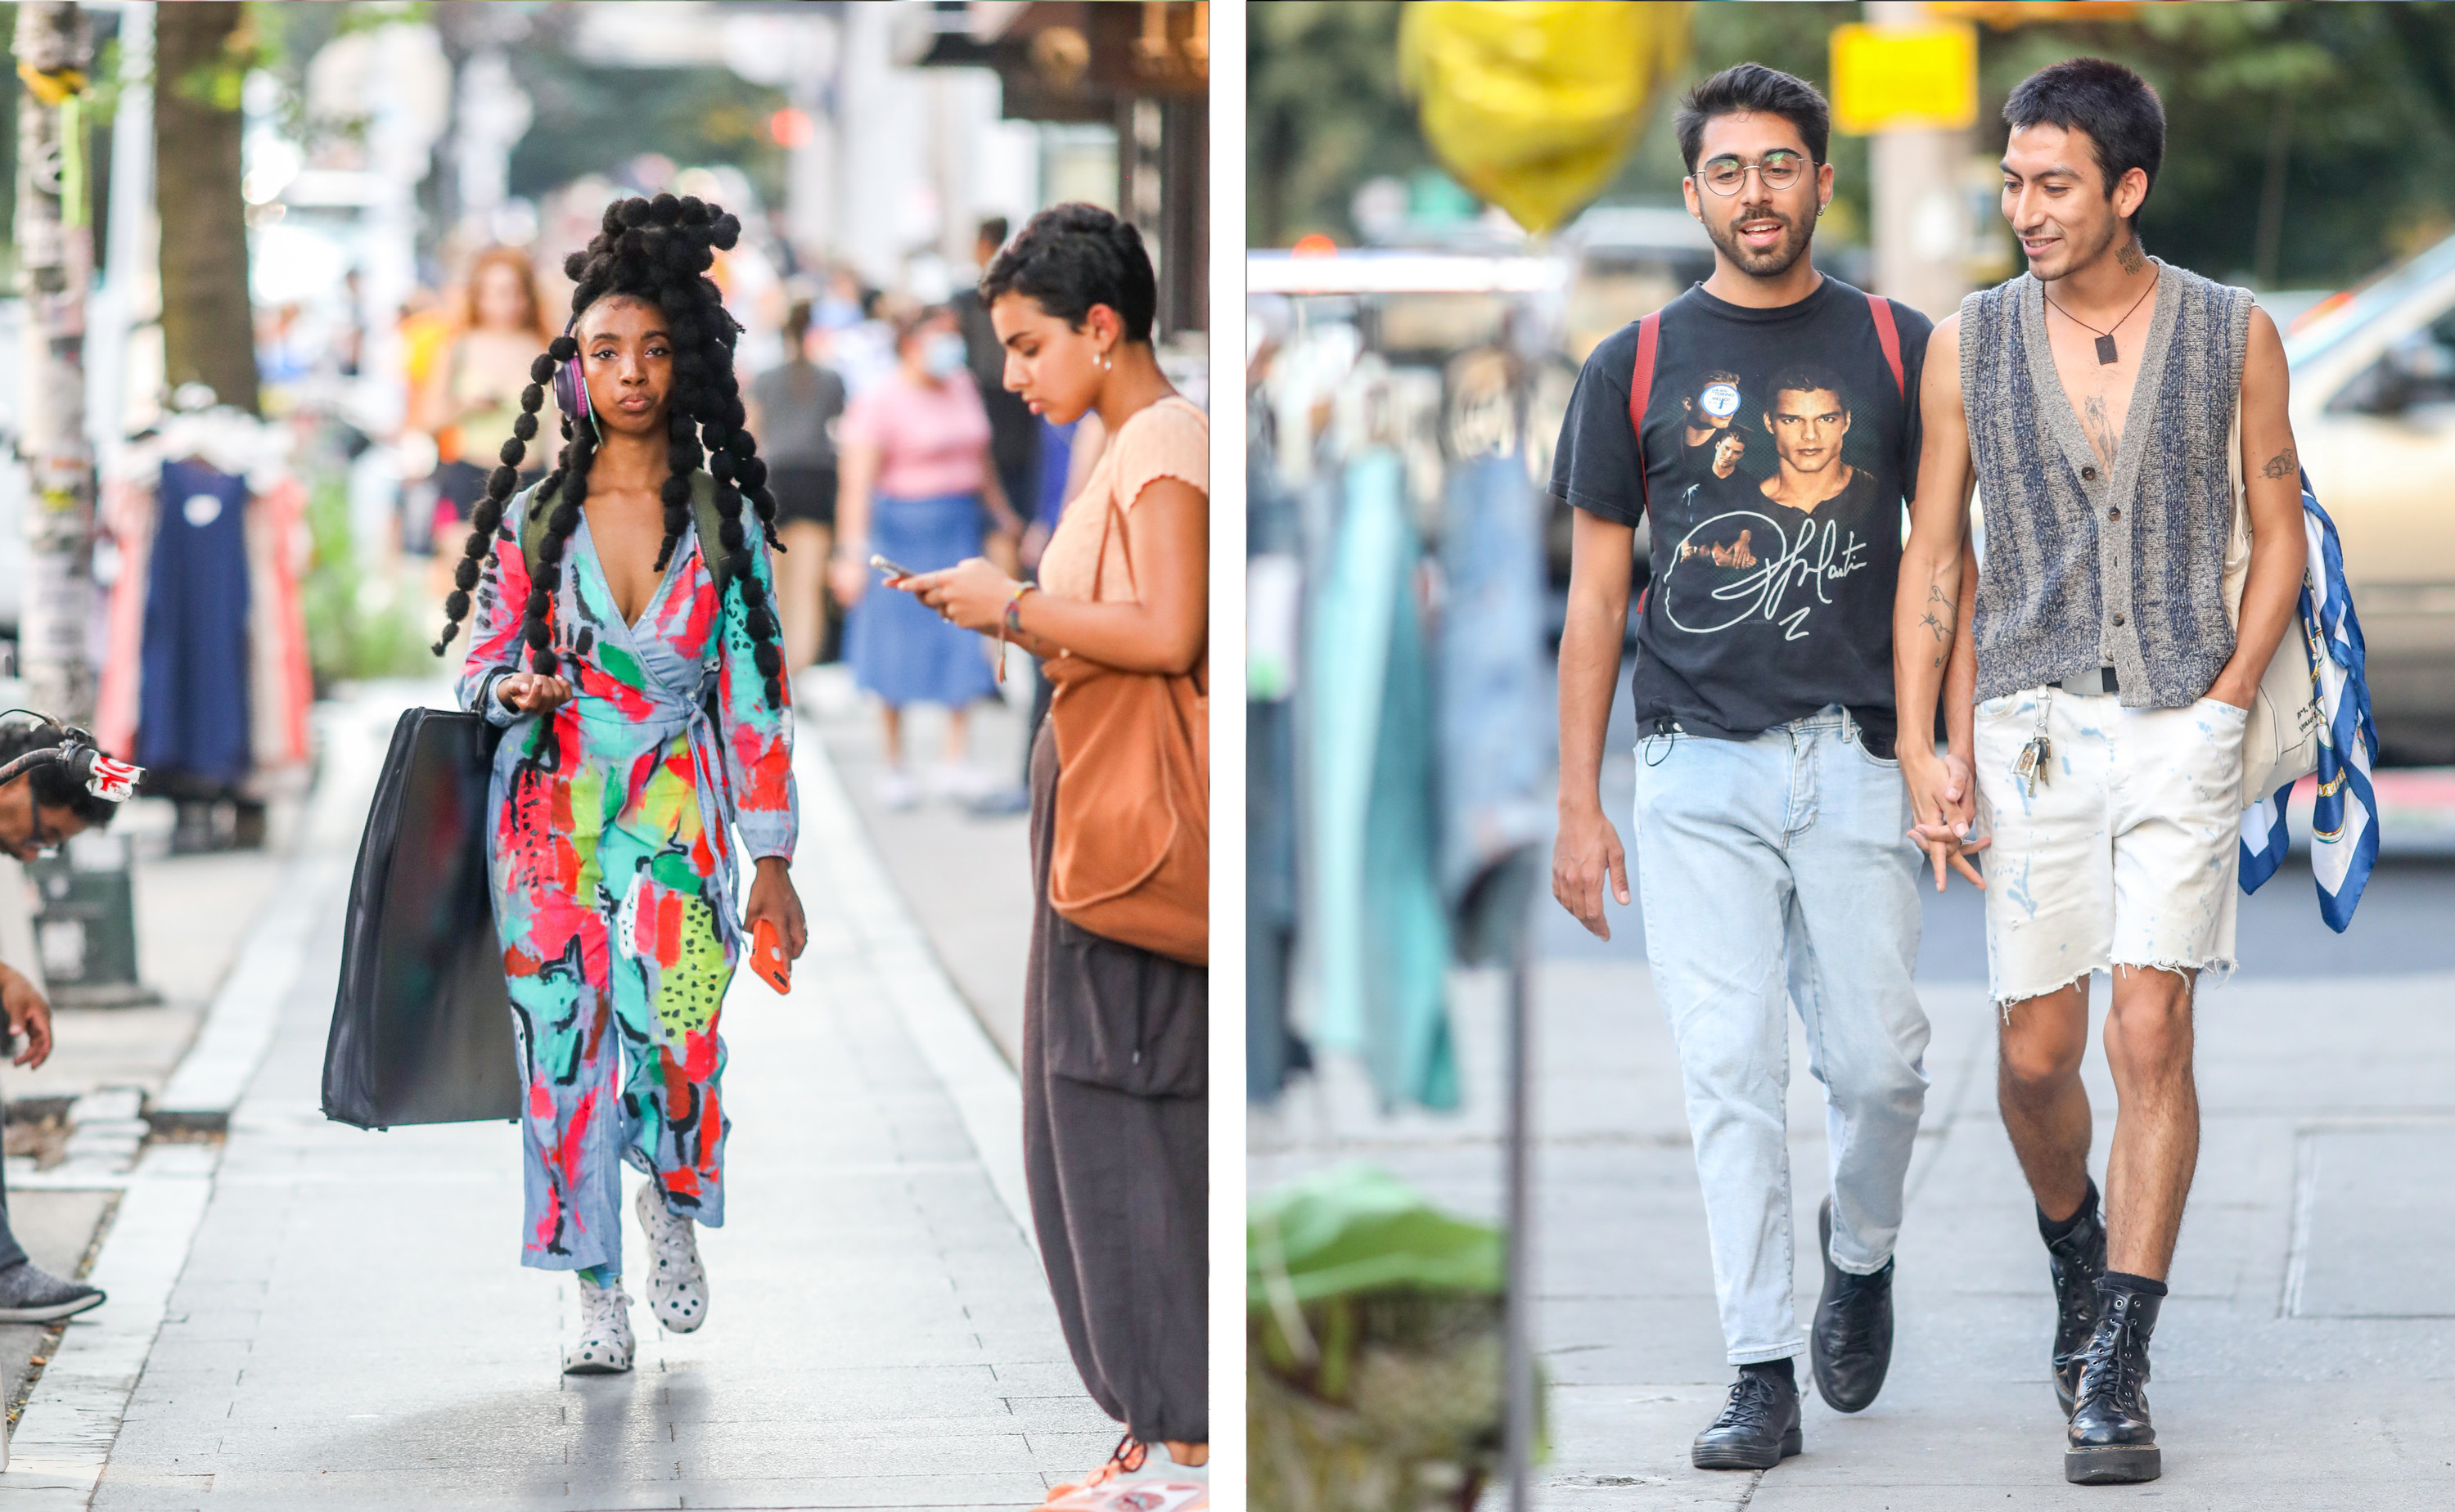 Left, a woman in a handpainted jumpsuit, right, two men hold hands as they walk down the street